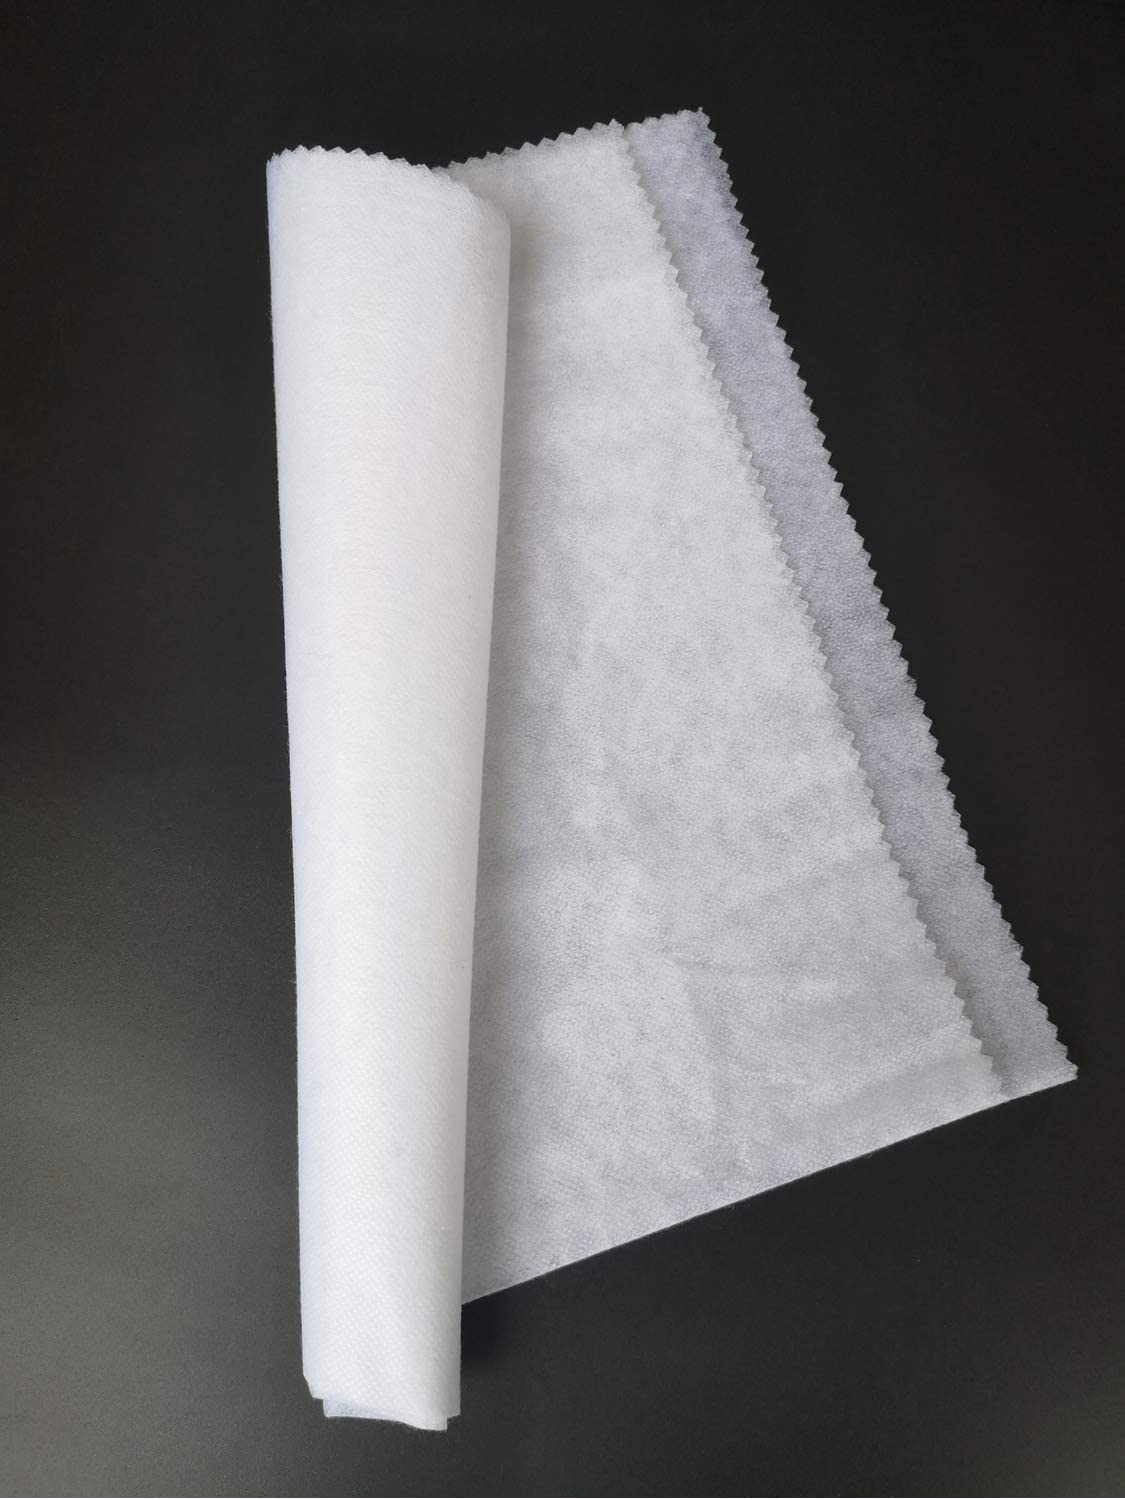 Fusible Interfacing Lightweight Fabric for Quilting Stabilizer T-Shirt,Handmade Face Masks, Nonwoven One Side Fusible, Iron-On Adhesive 39